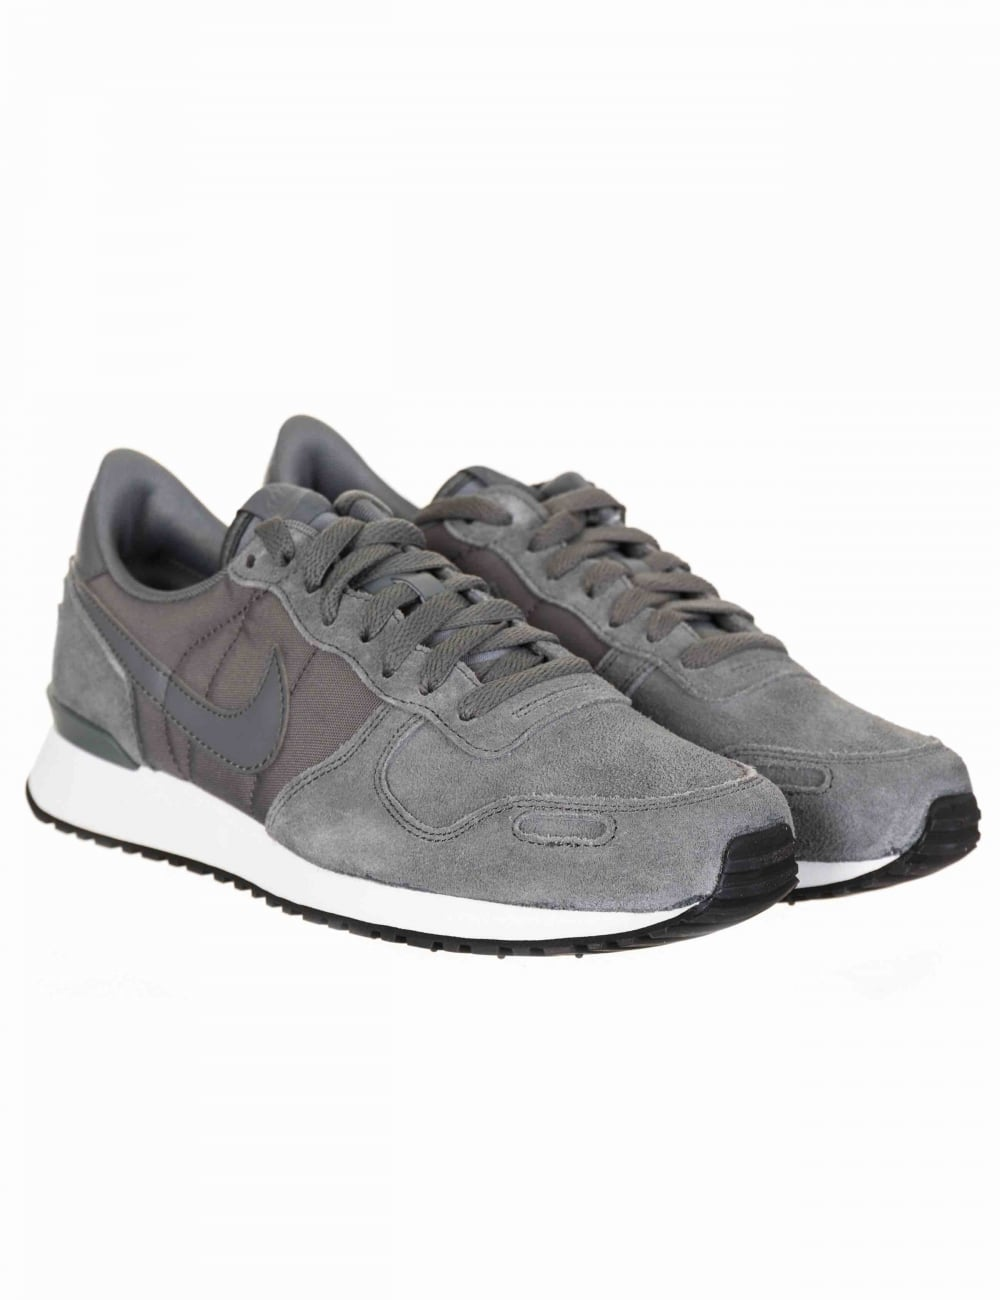 outlet store ac0fd a678a Air Vortex Ltr Shoes - Cool GreyCool Grey